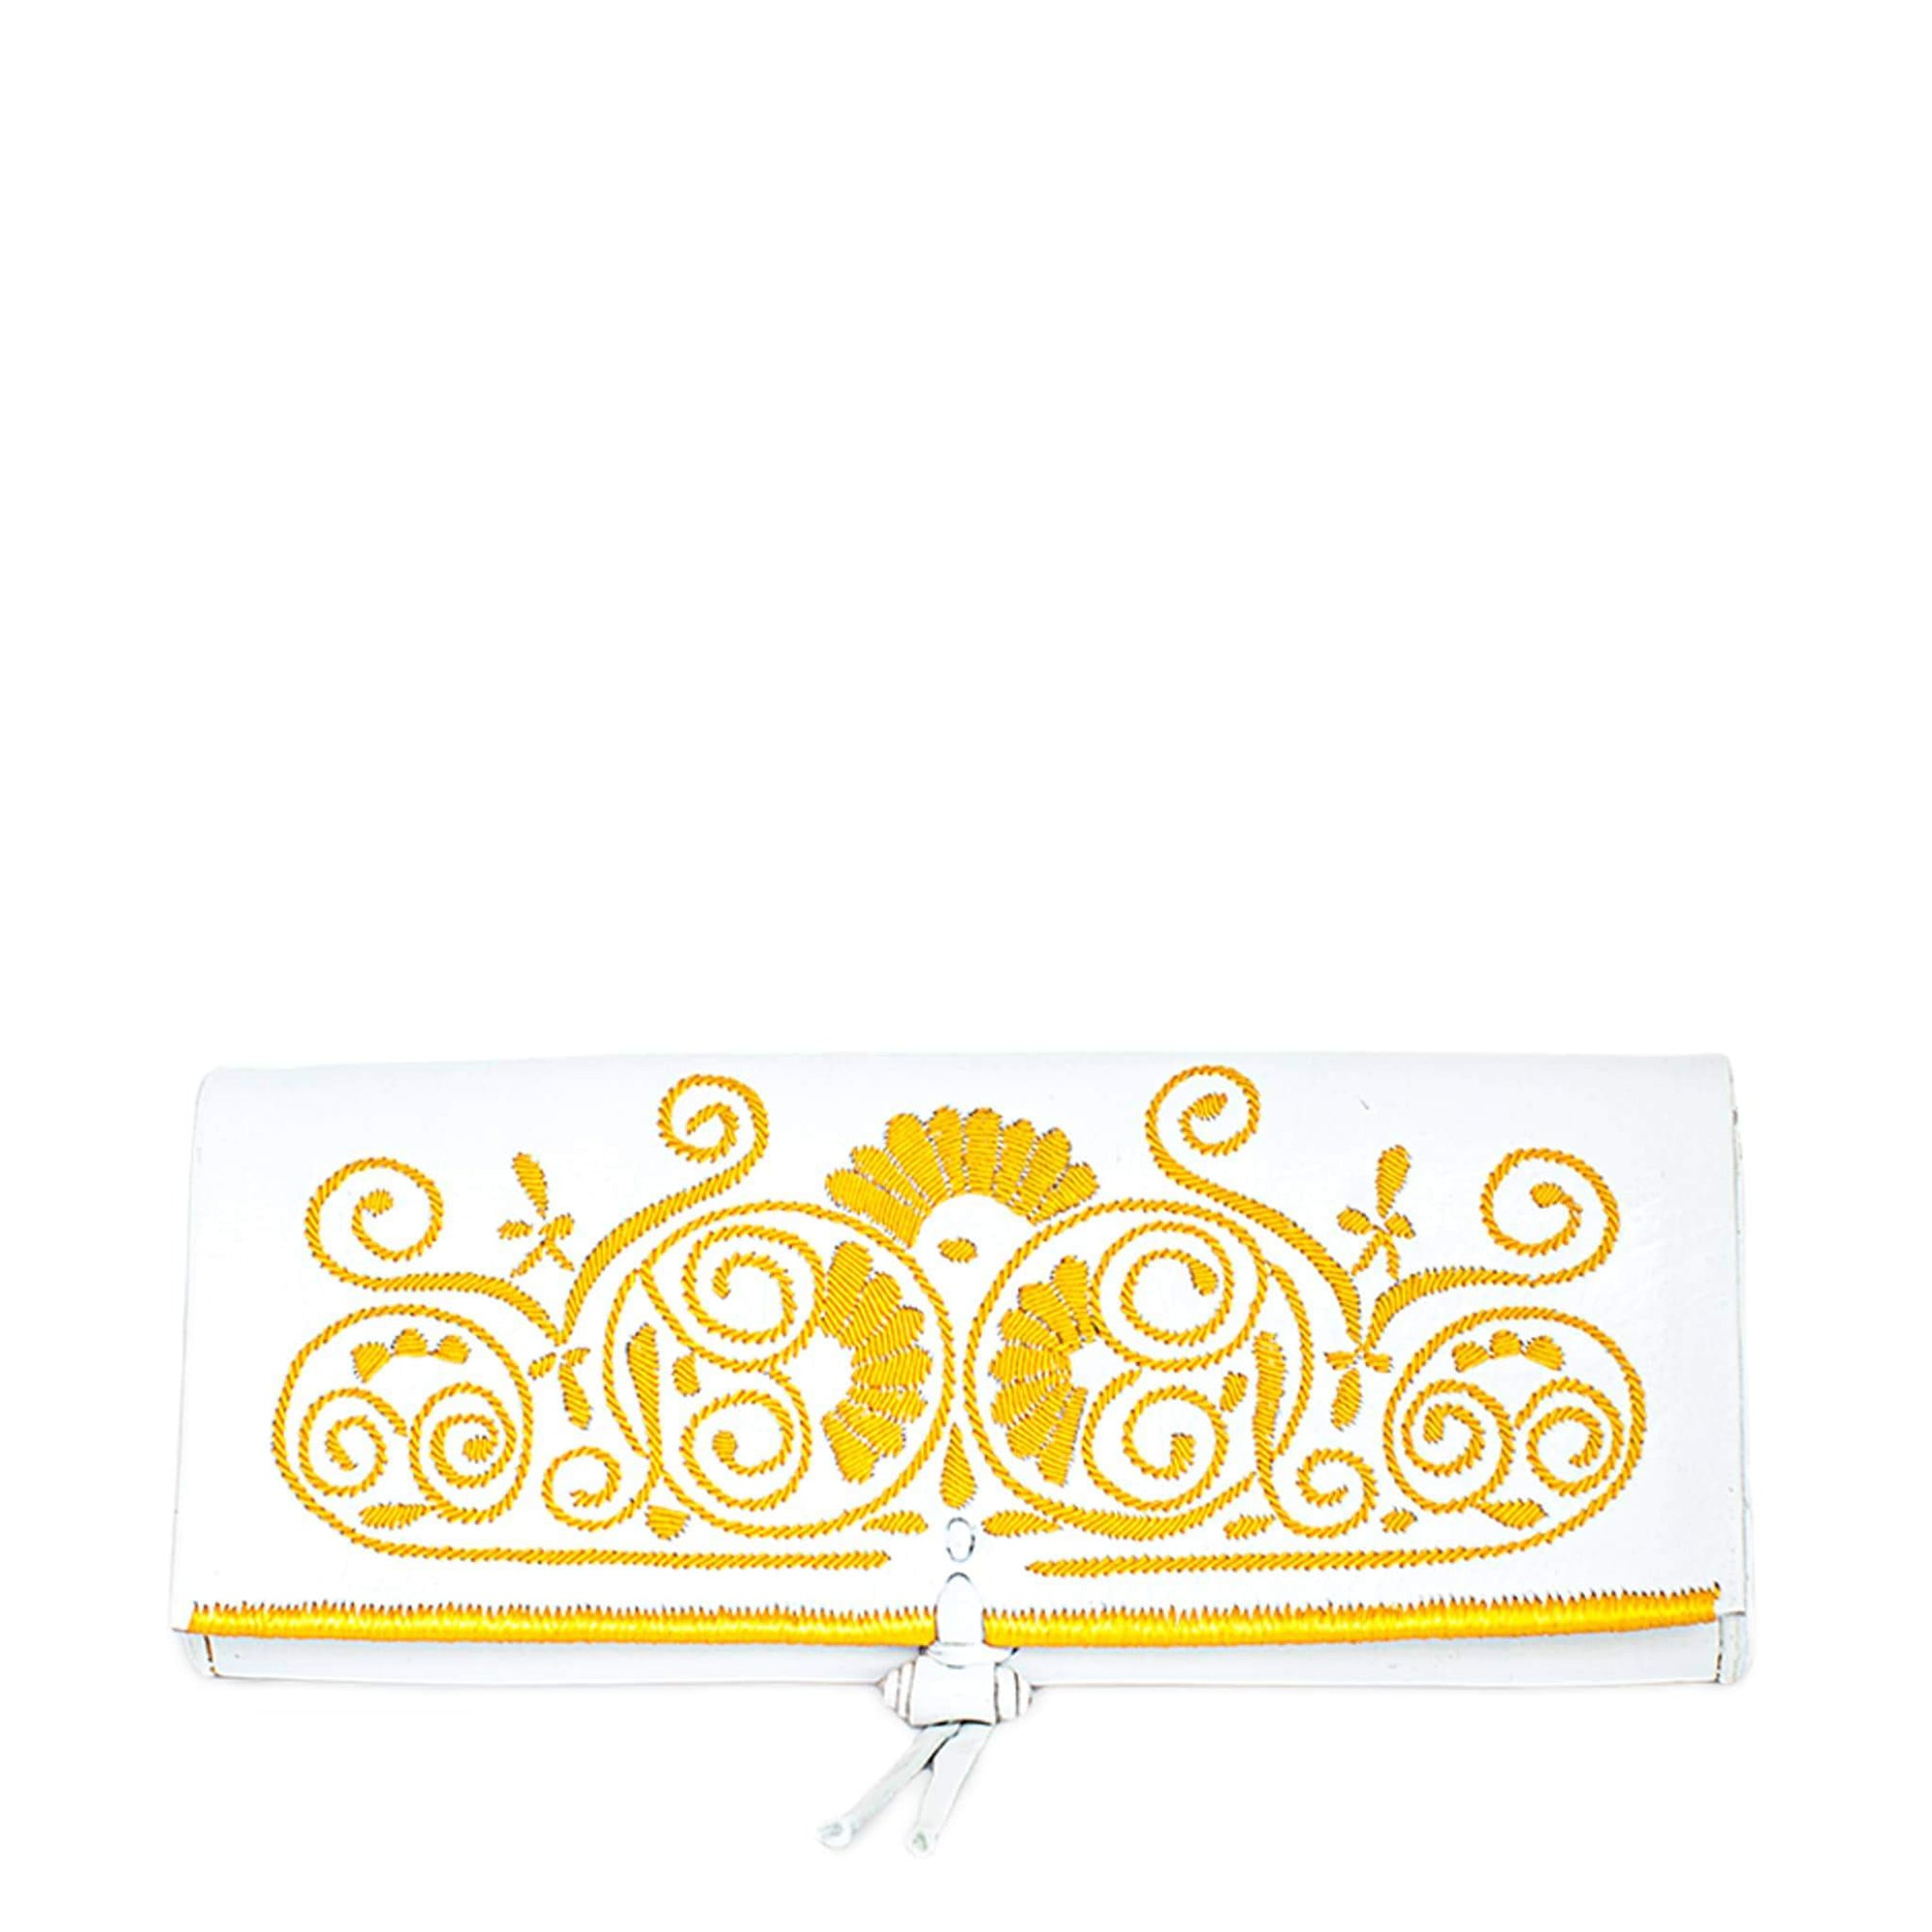 Embroidered Leather Clutch Bag